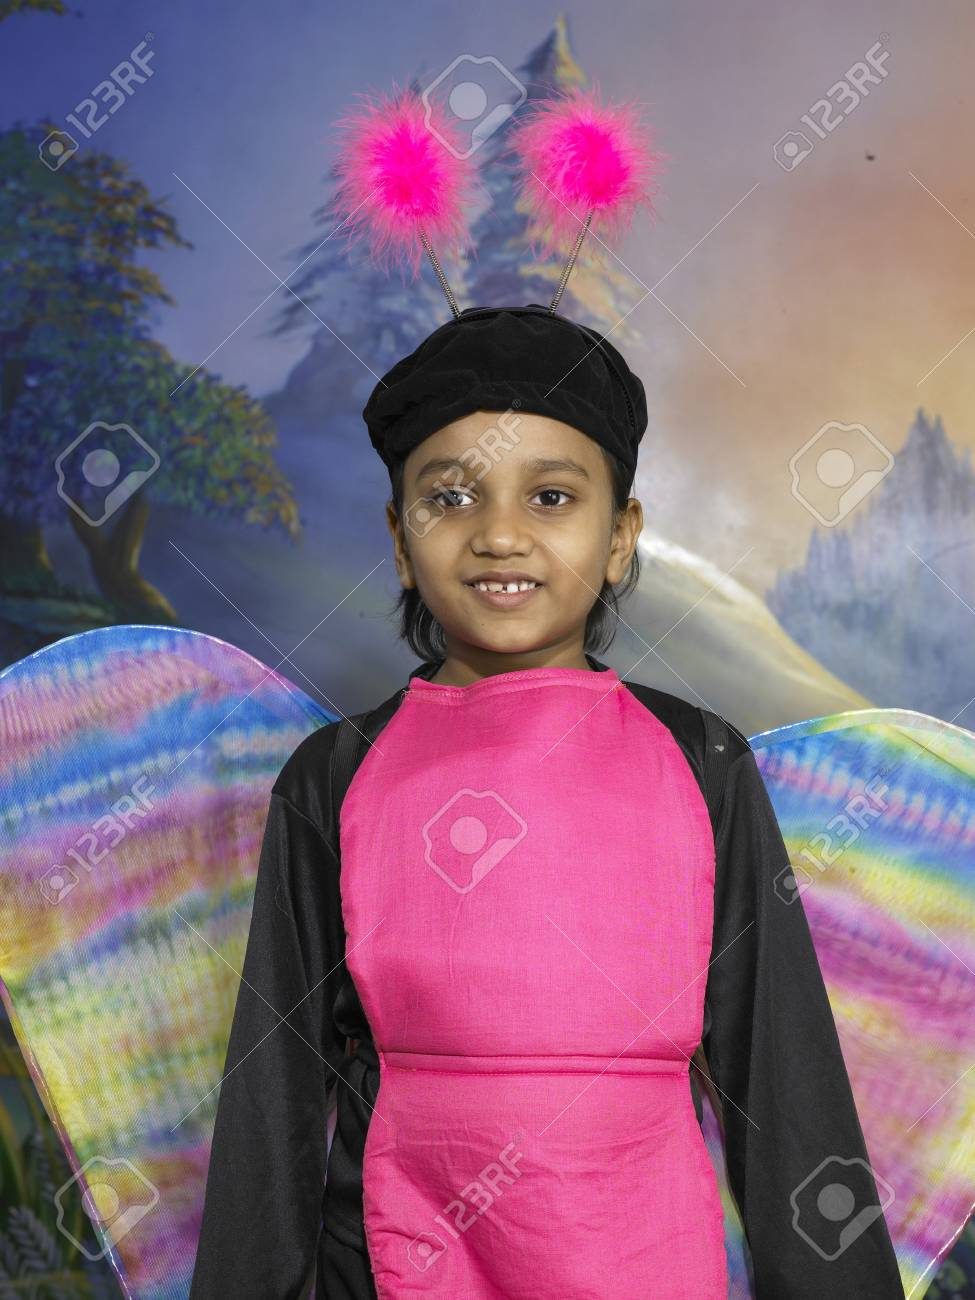 4fcebd85bd South Asian Indian girl dressed as butterfly performing fancy dress  competition on stage in nursery school